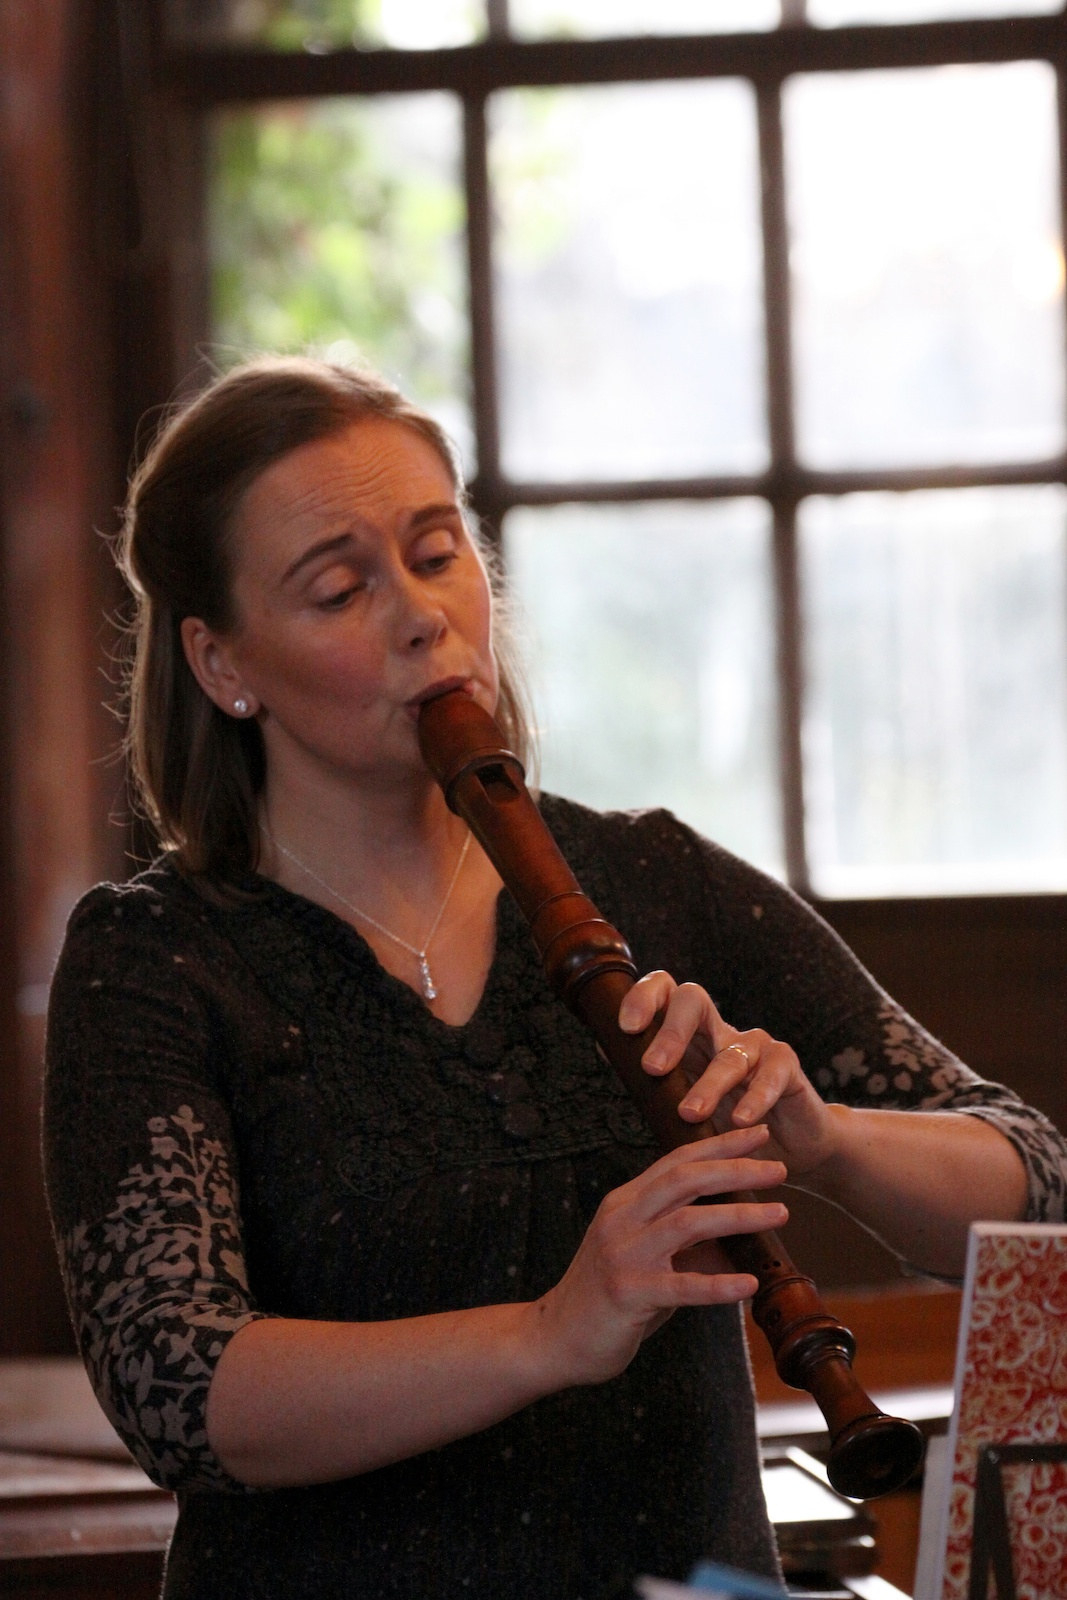 Louise Bradbury playing recorder